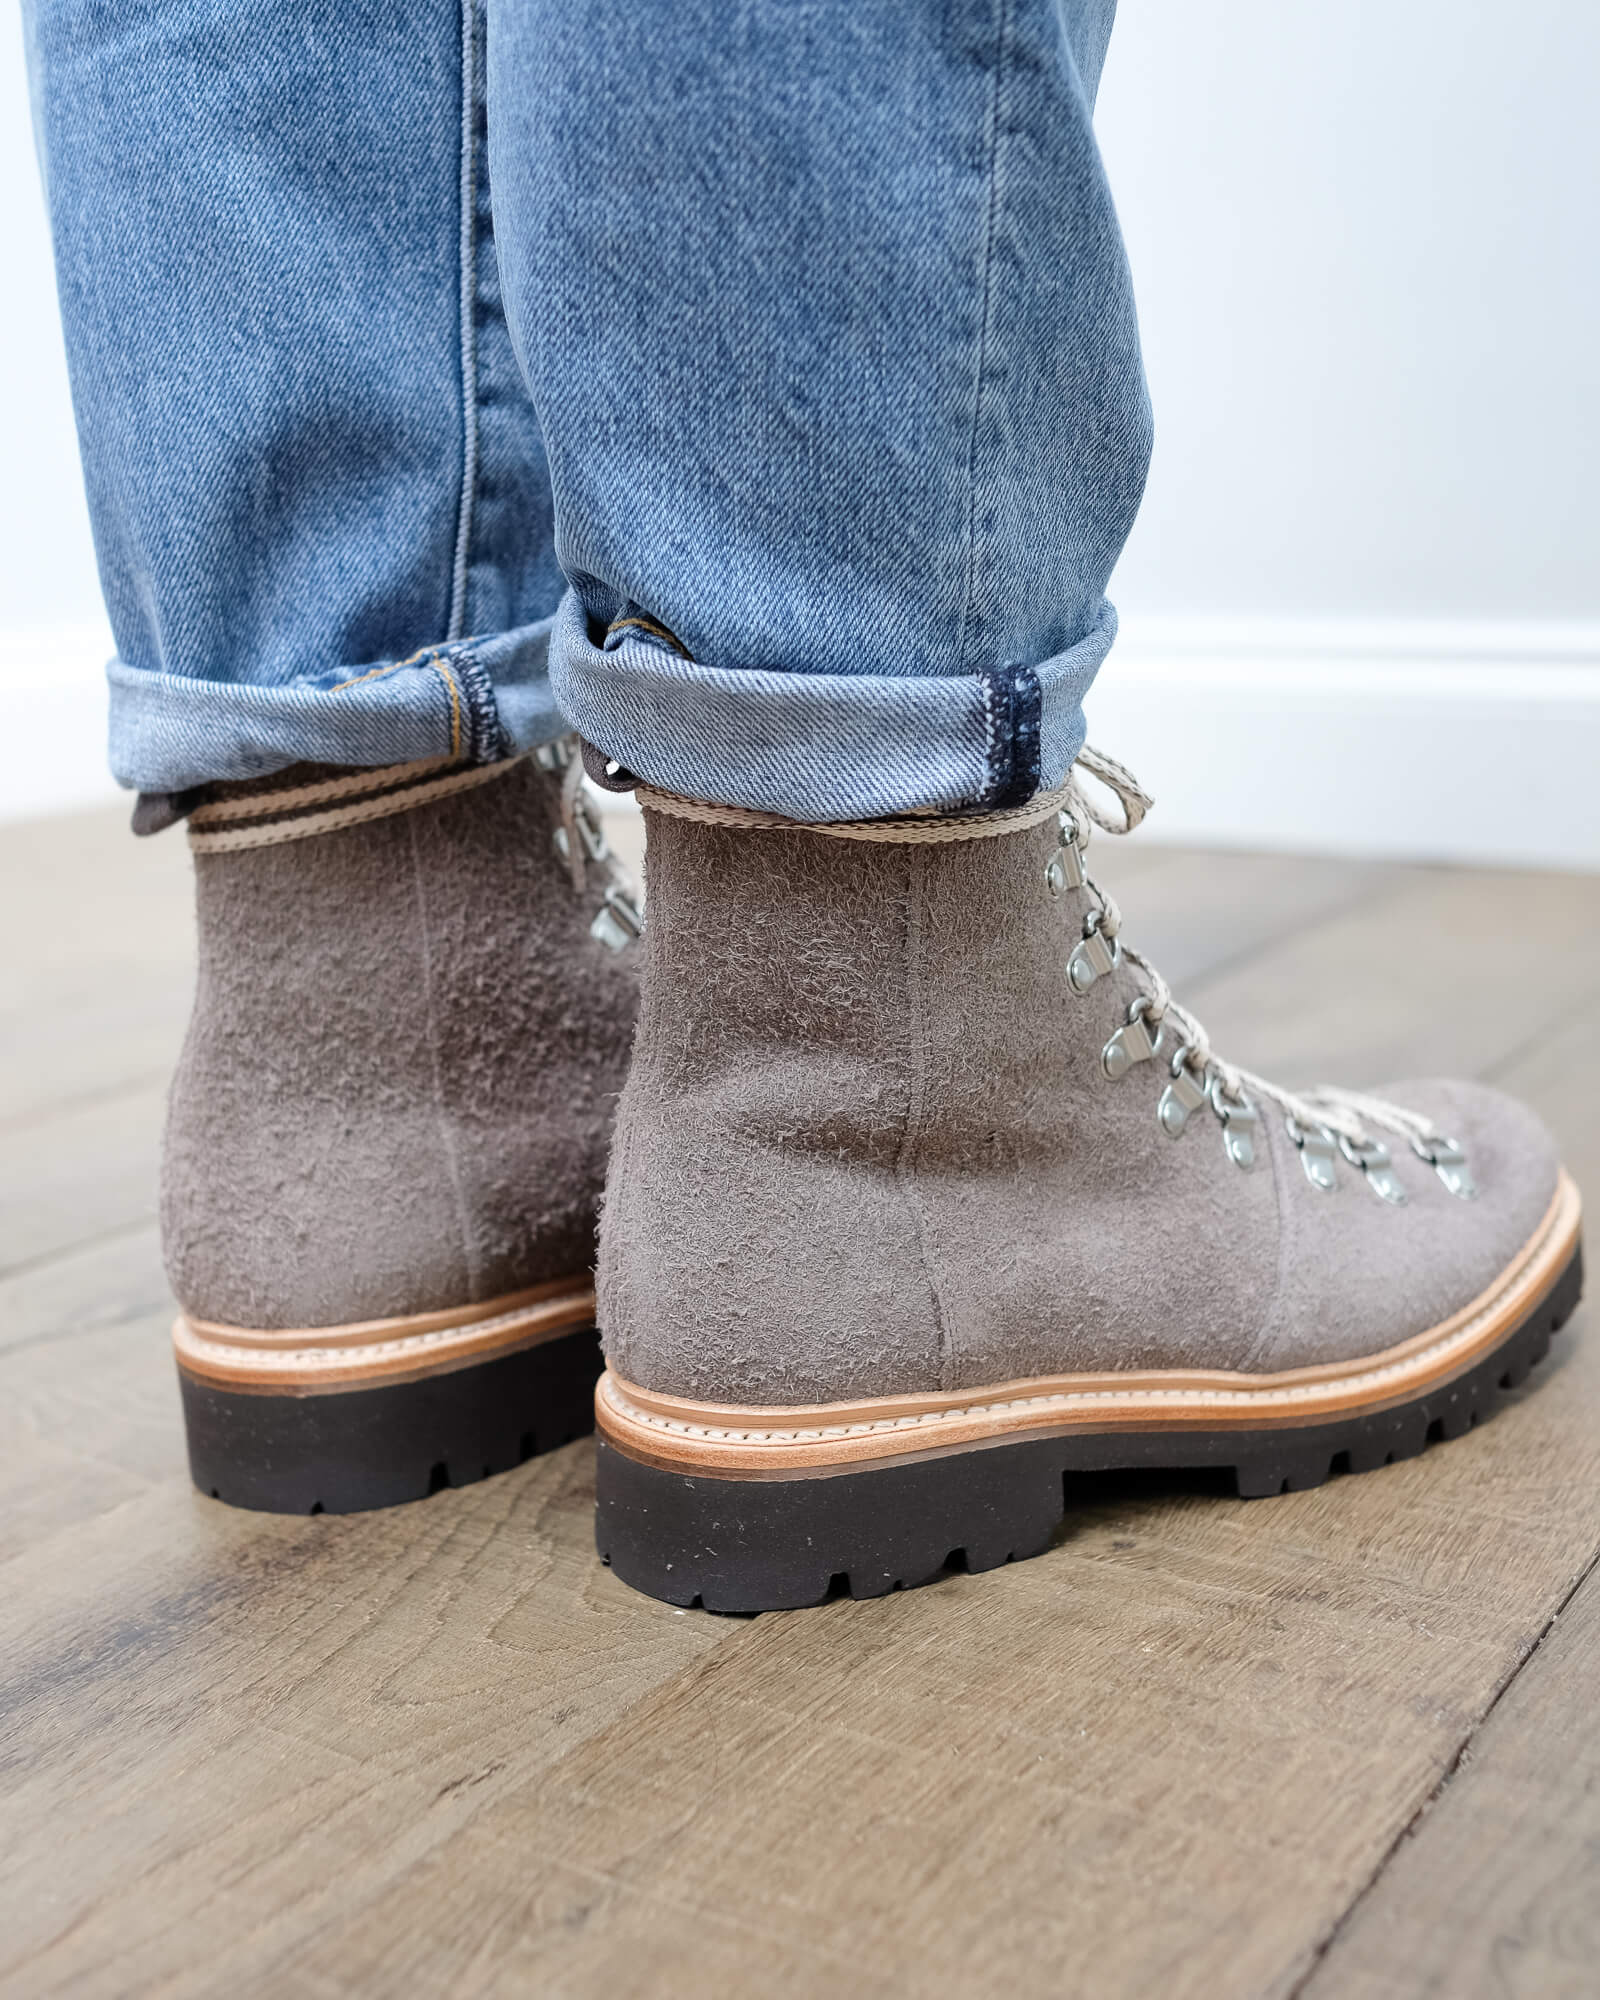 Grenson Nanette vigogna shaggy suede boots in brown